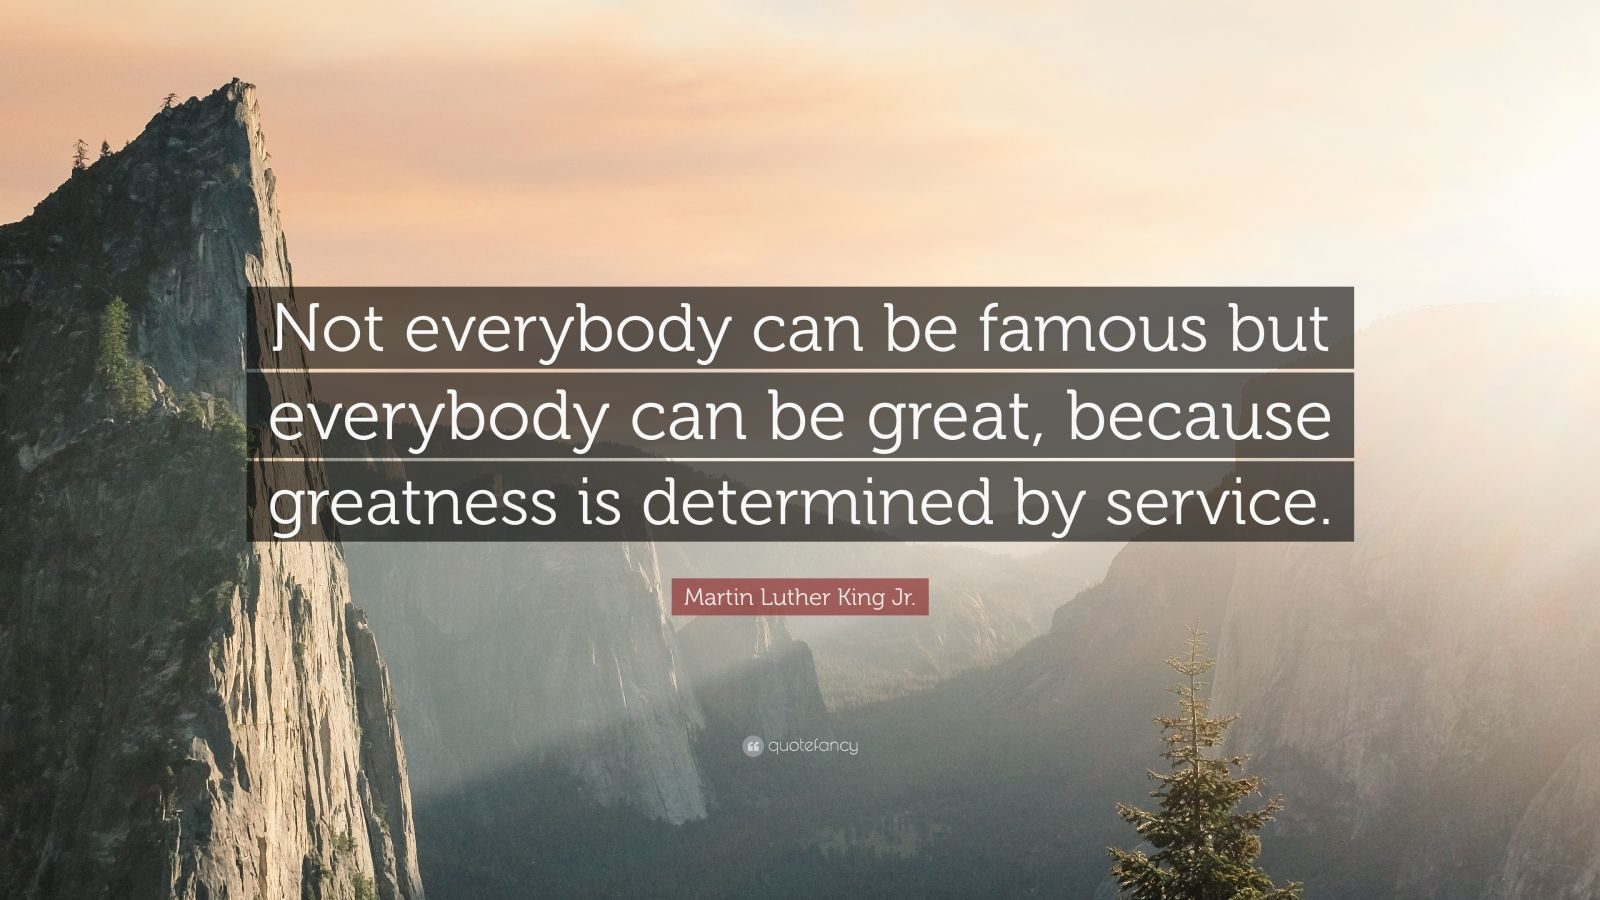 """Martin Luther King Jr. Quote: """"Not everybody can be famous but everybody can be great, because greatness is determined by service."""""""